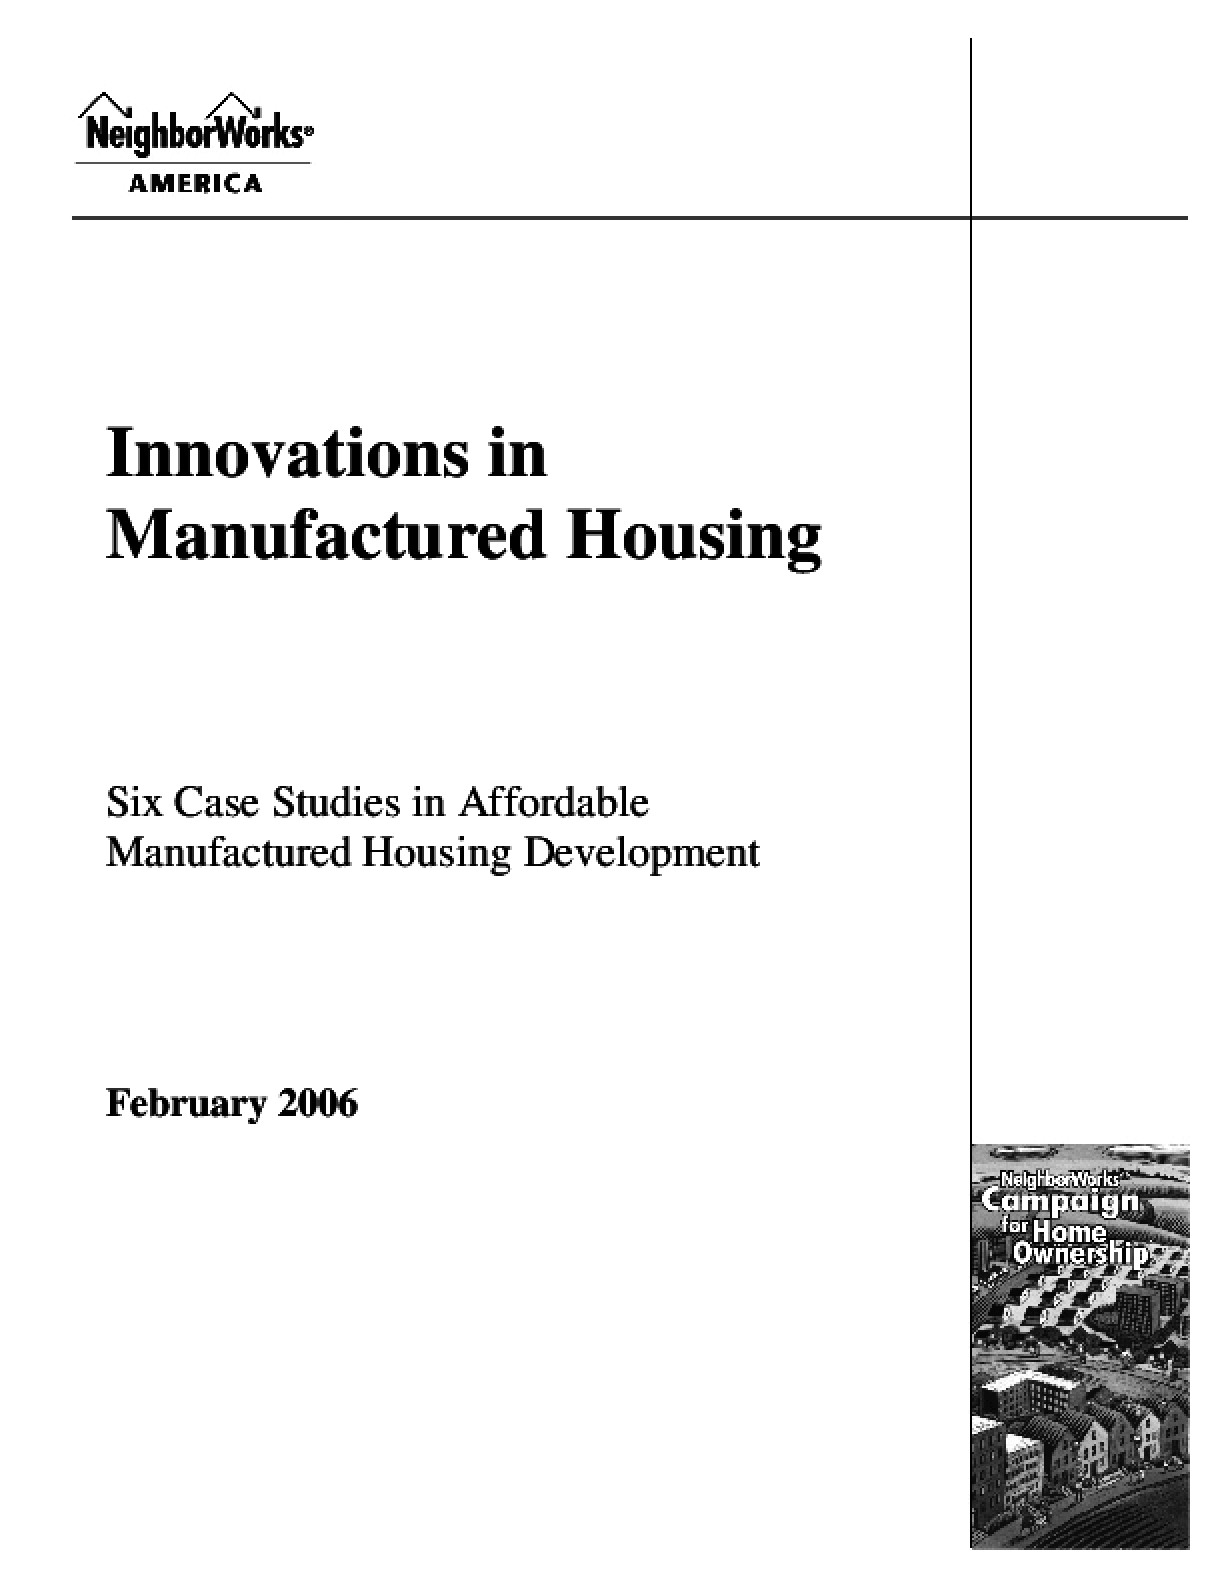 Innovations in Manufactured Housing: Six Case Studies in Affordable Manufactured Housing Development